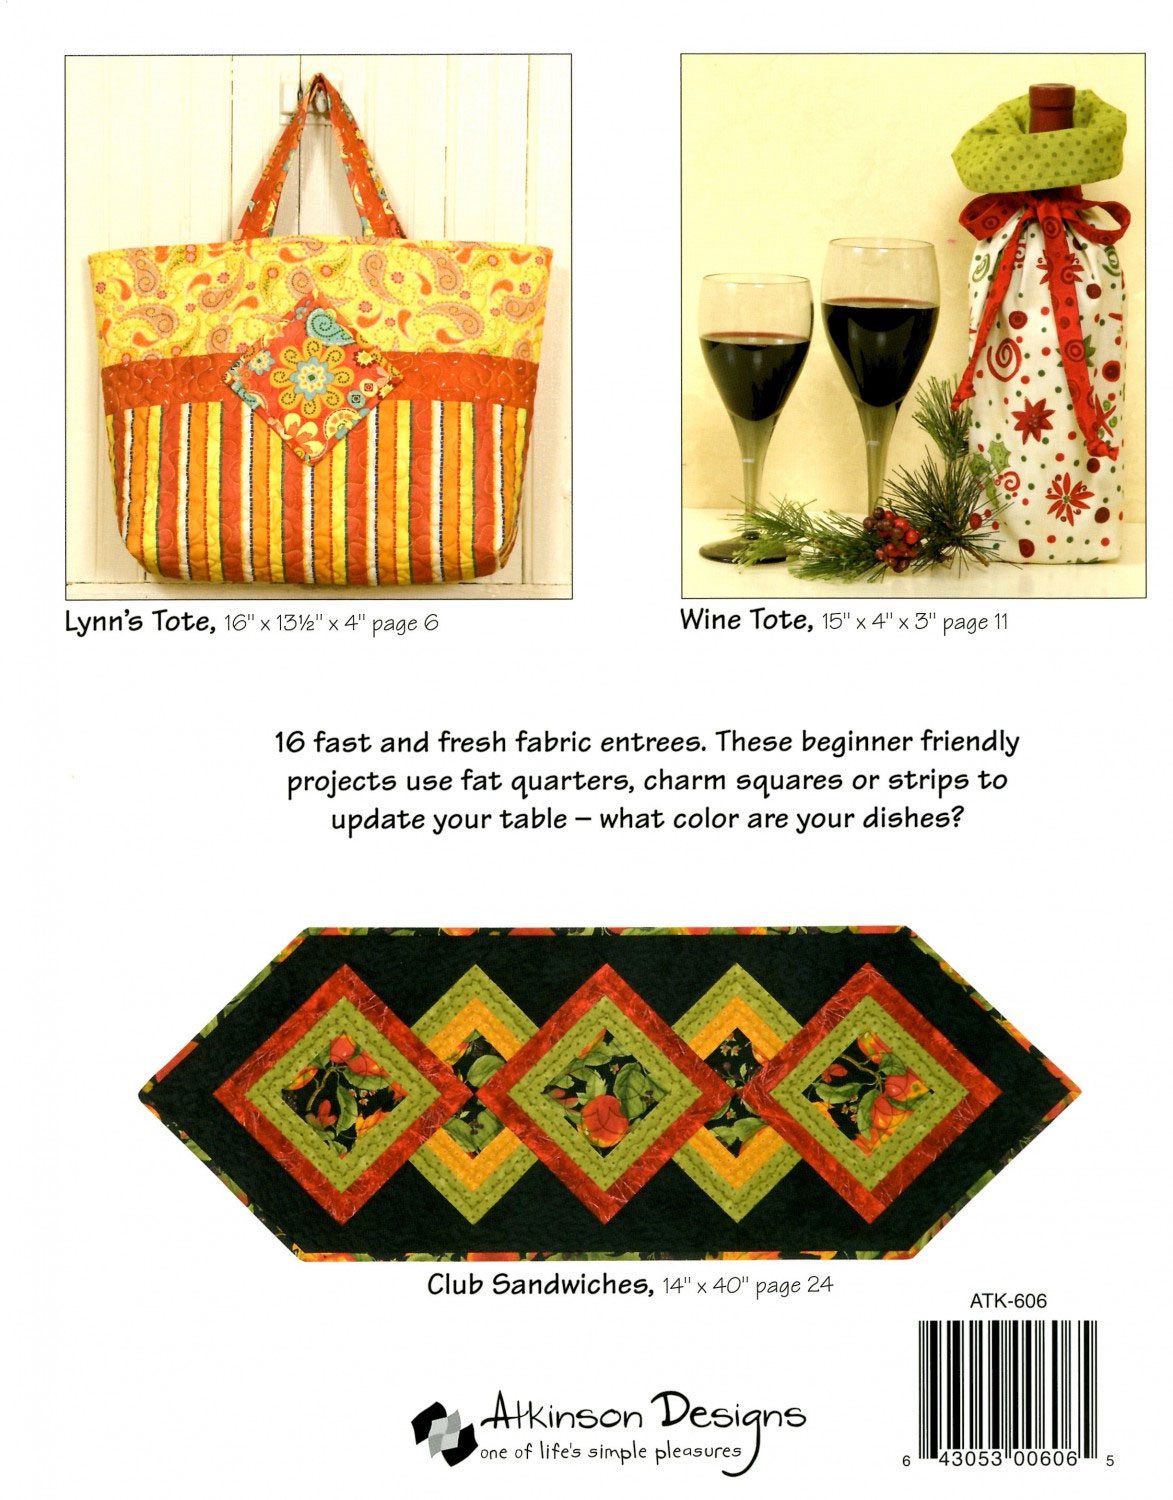 Lets-Do-Lunch-sewing-pattern-Atkinson-Designs-back